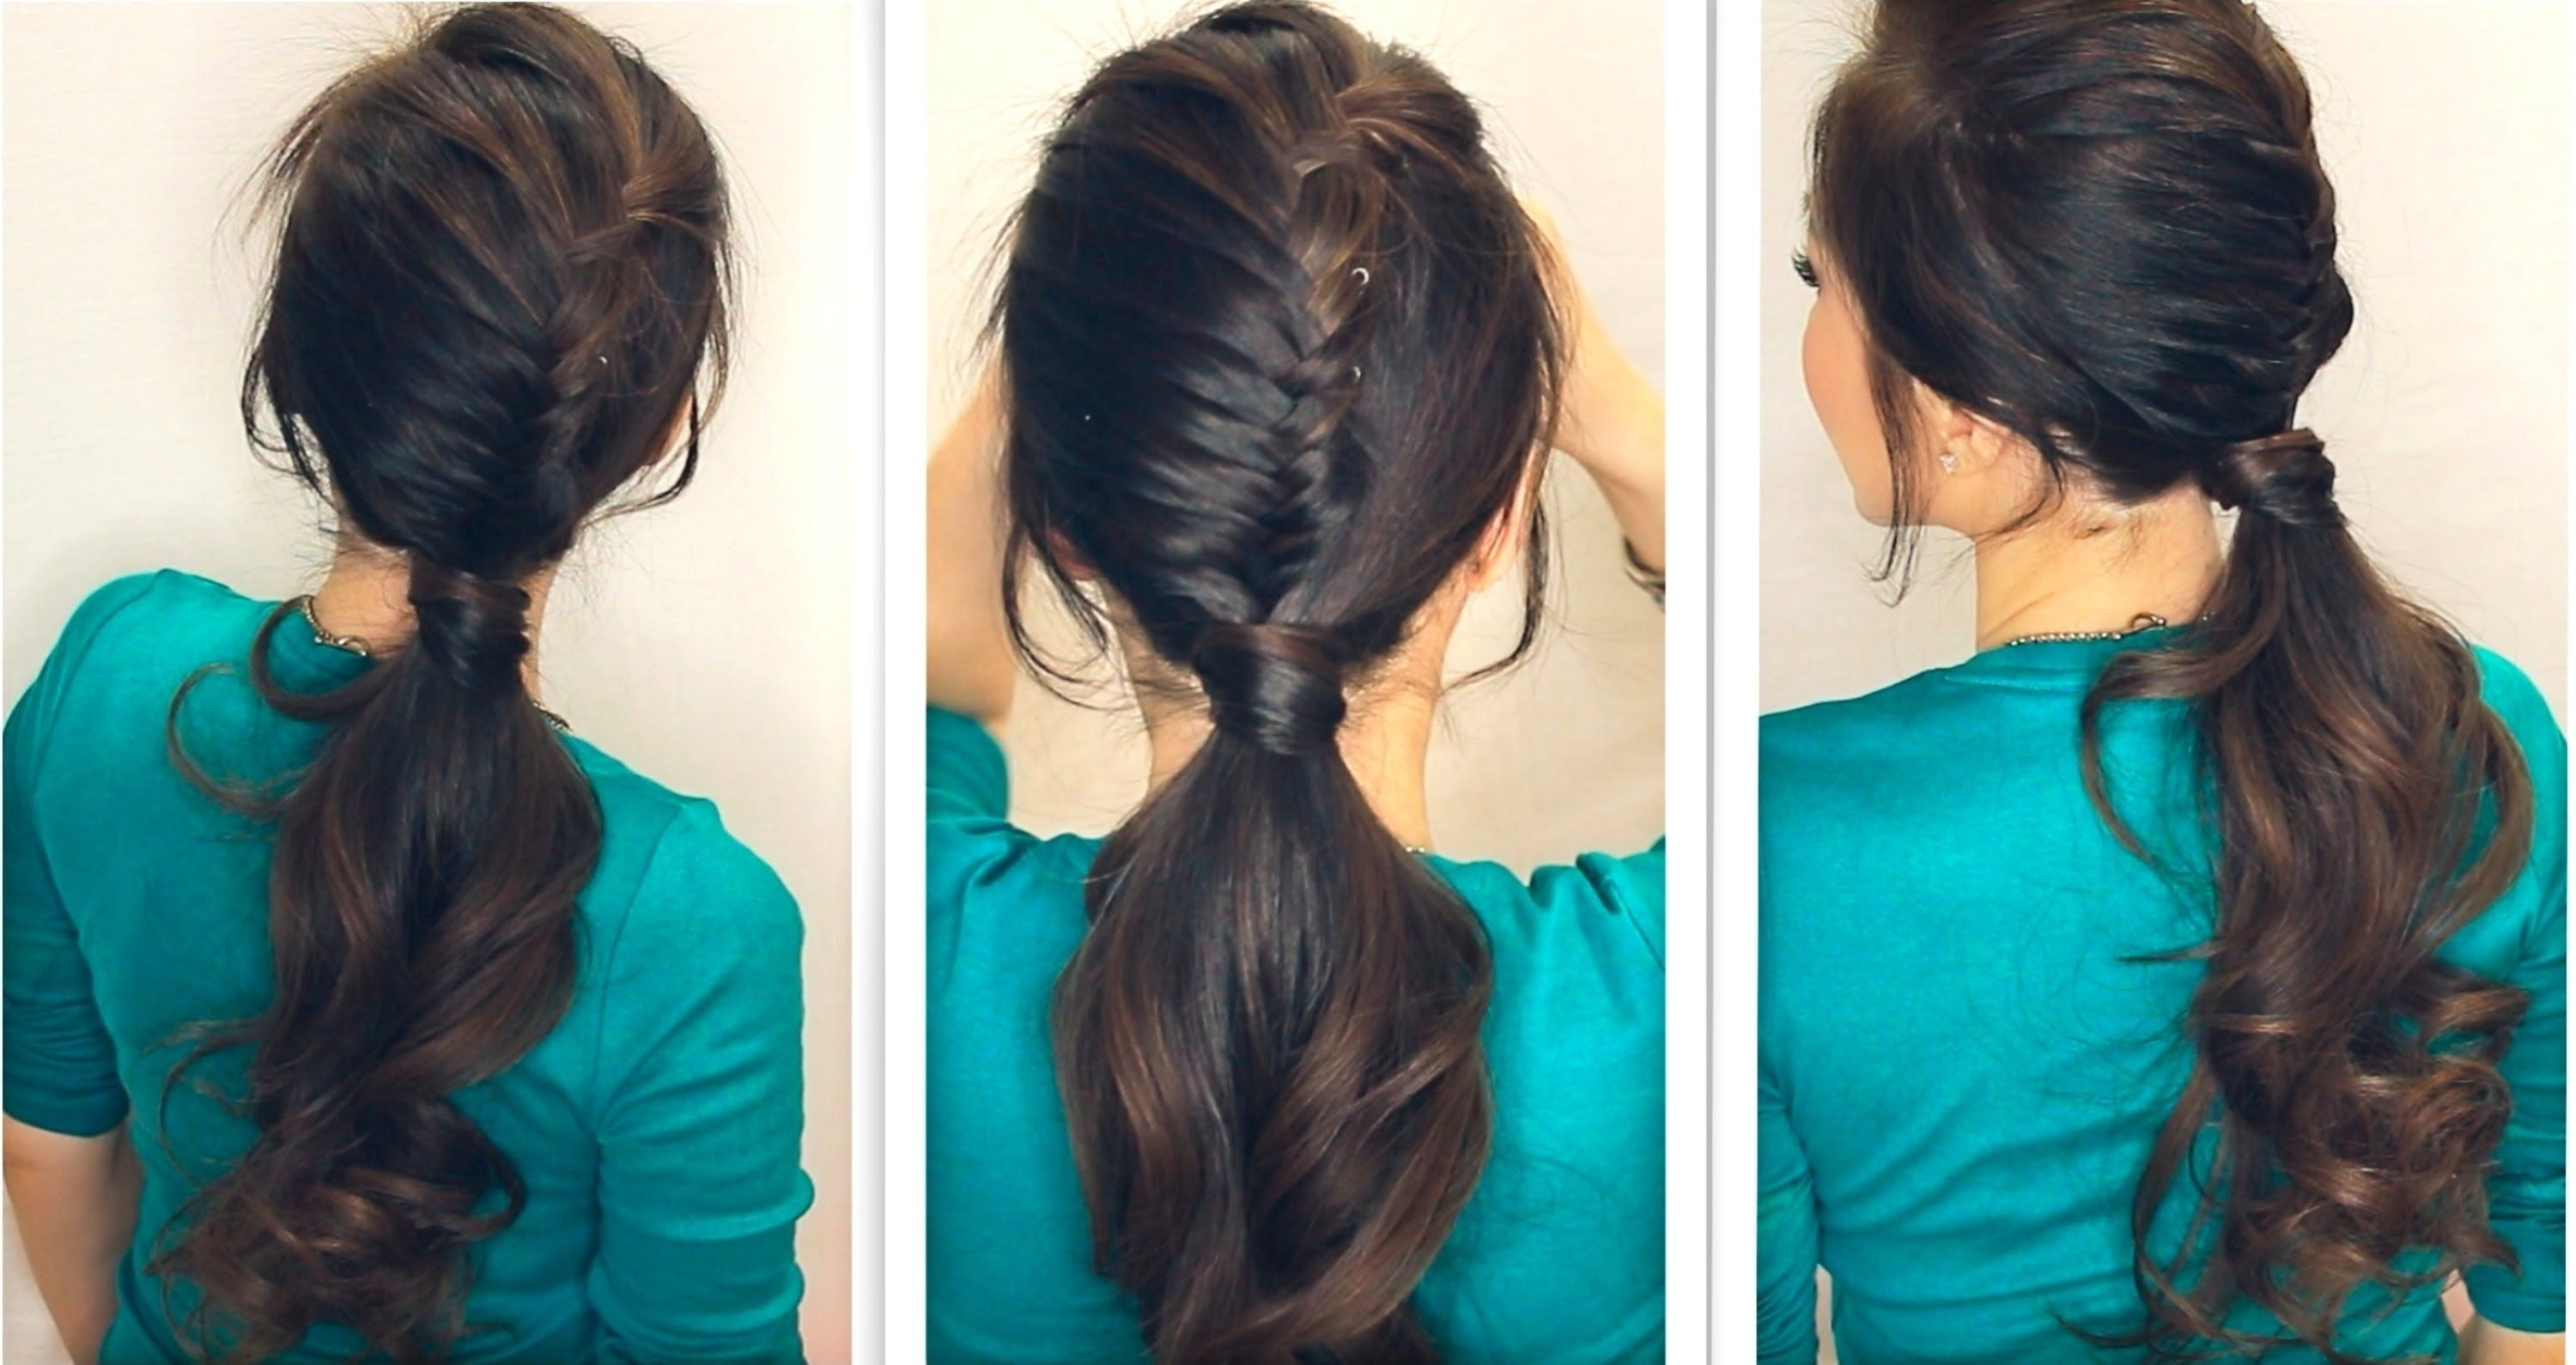 How To Create A Half, French Fishtail Braid, Fancy Ponytail With Regard To Well Known Half French Braid Ponytail Hairstyles (View 12 of 20)